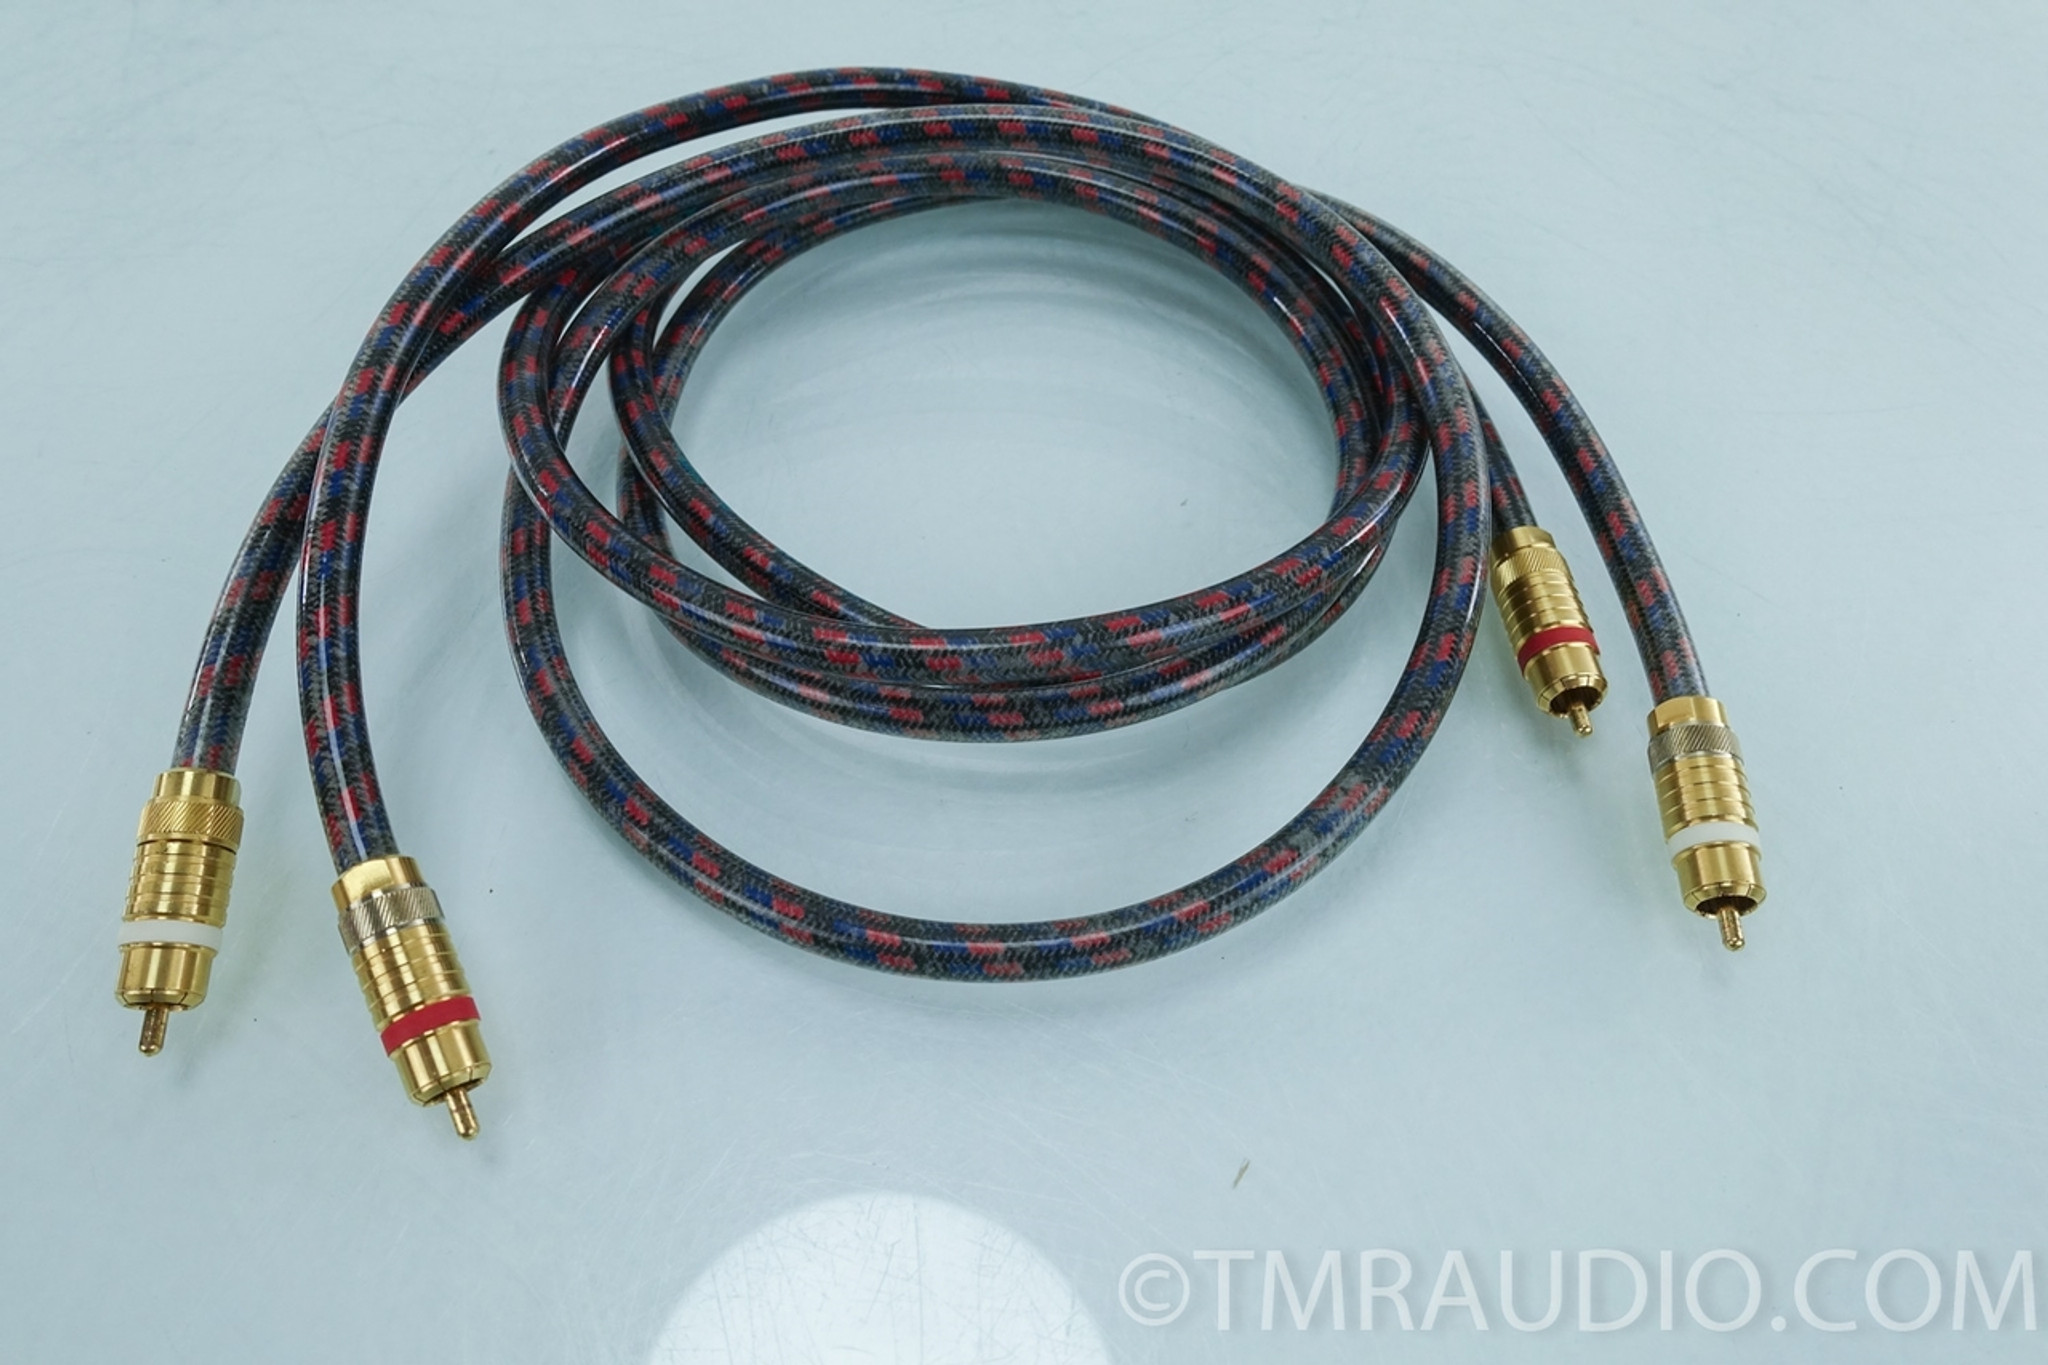 Acrotec 6N-2010 RCA Cables; 1.5m Pair Interconnects - The Music Room